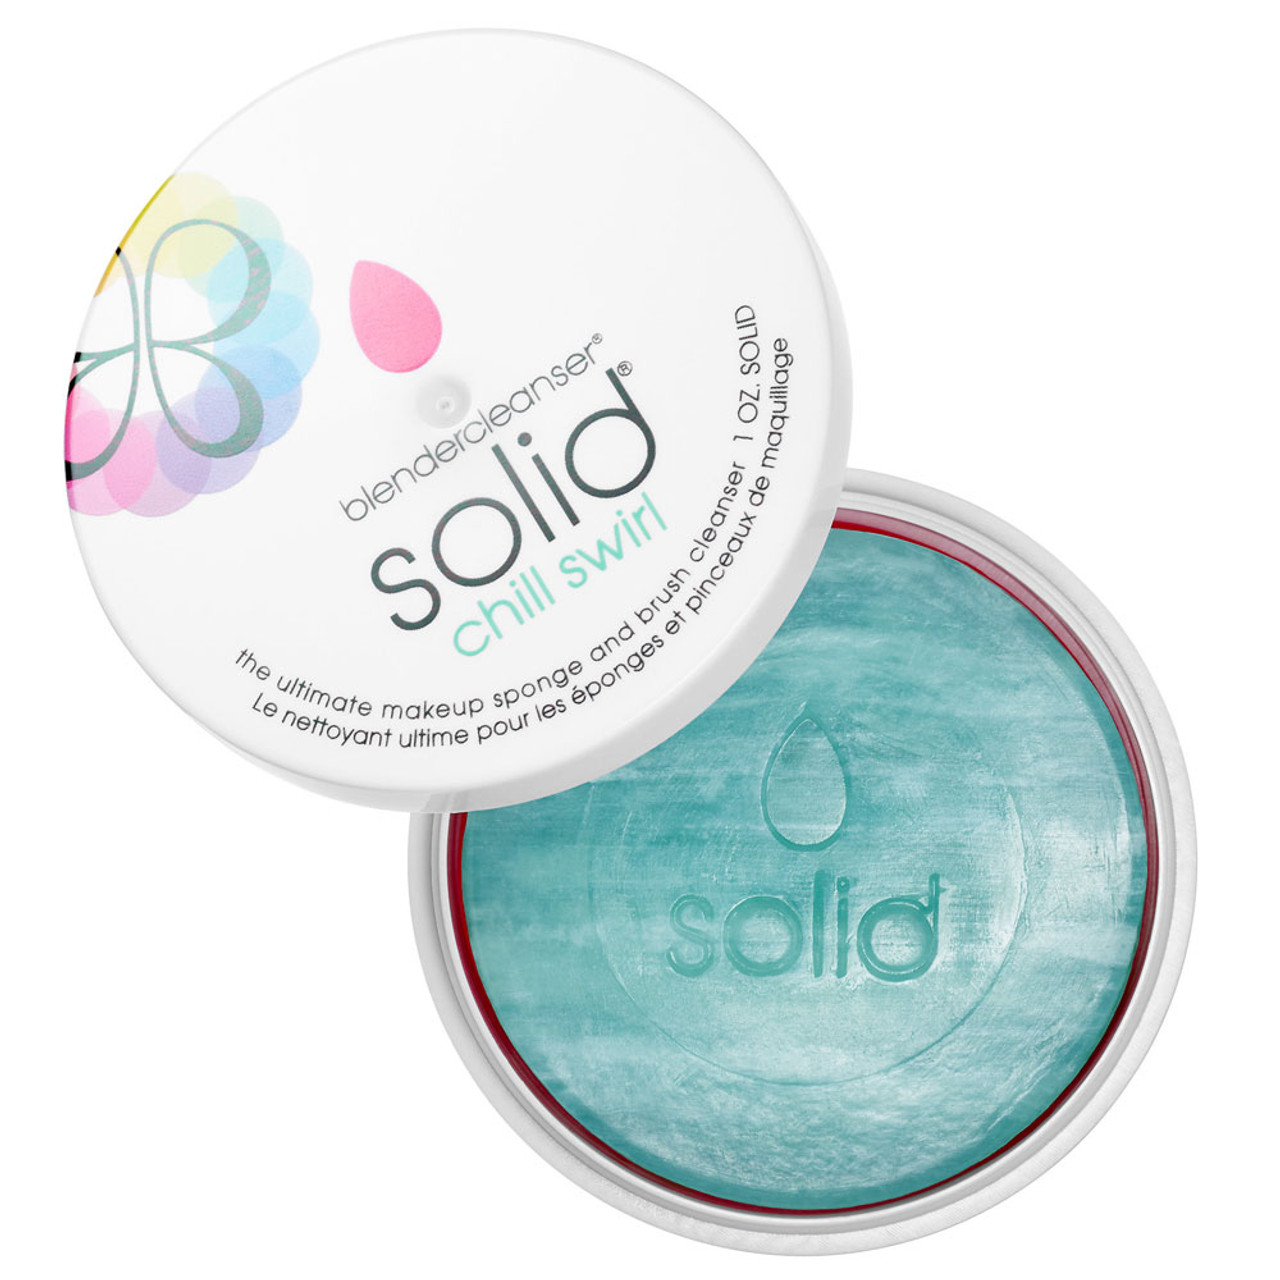 beautyblender Blendercleanser Solid Chill Swirl